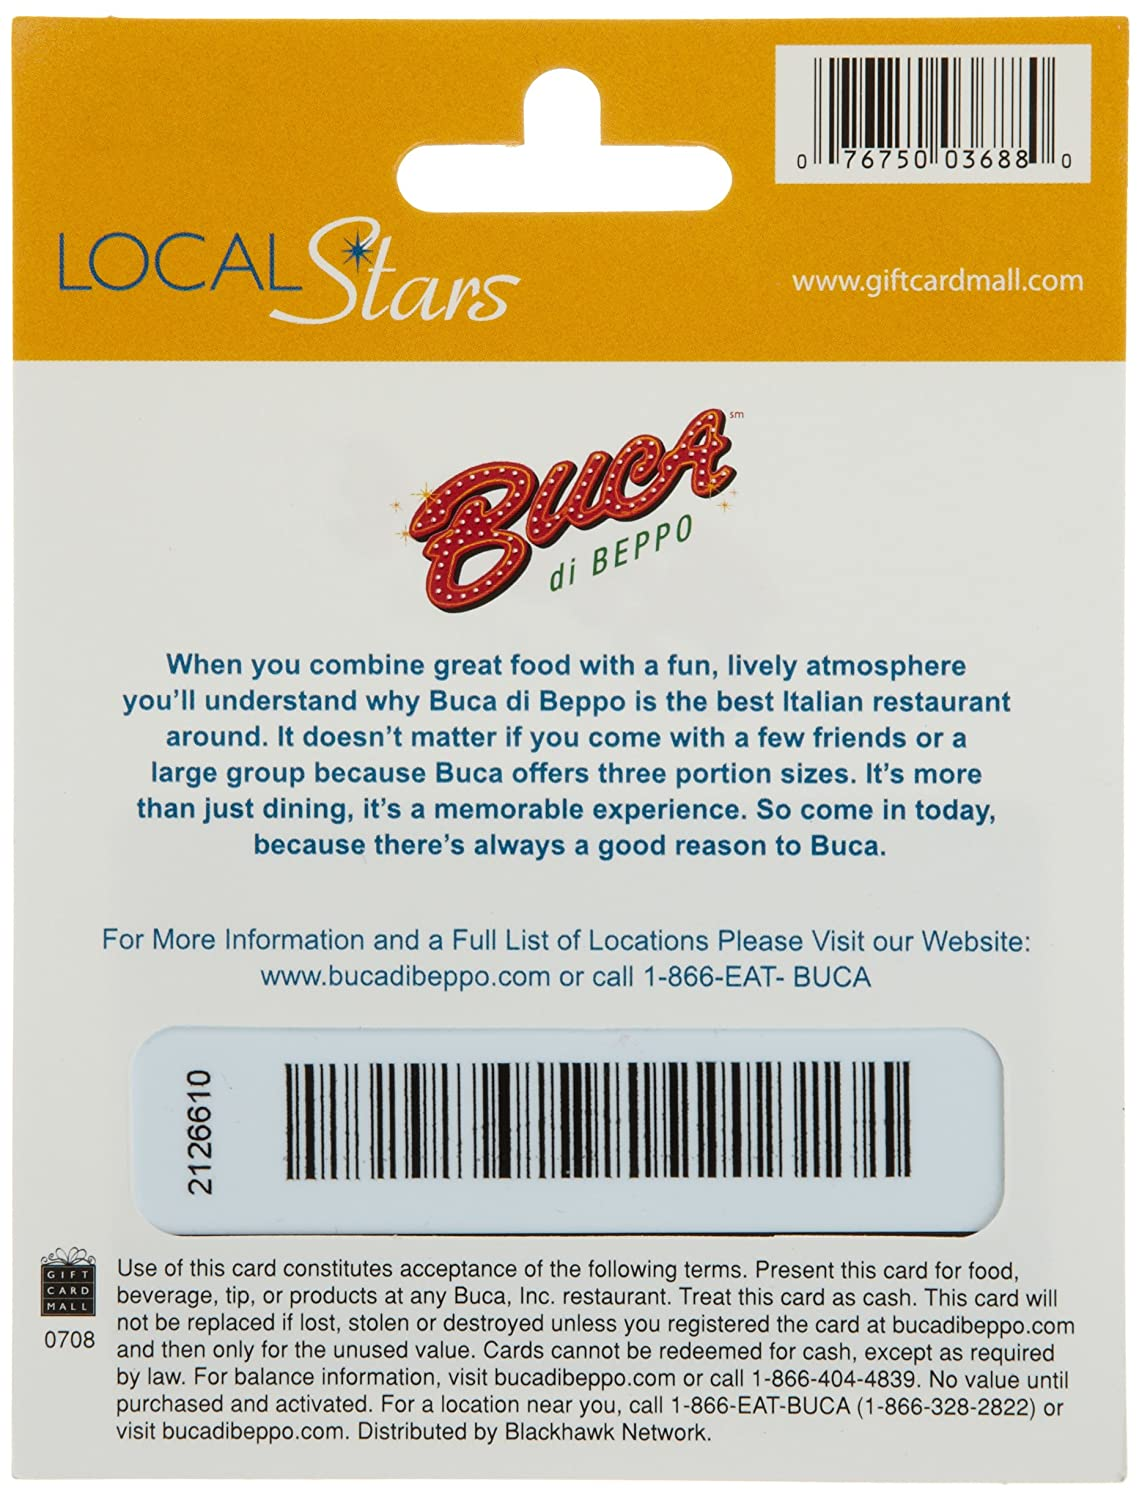 Amazon.com: Buca di Beppo Holiday Gift Card $25: Gift Cards